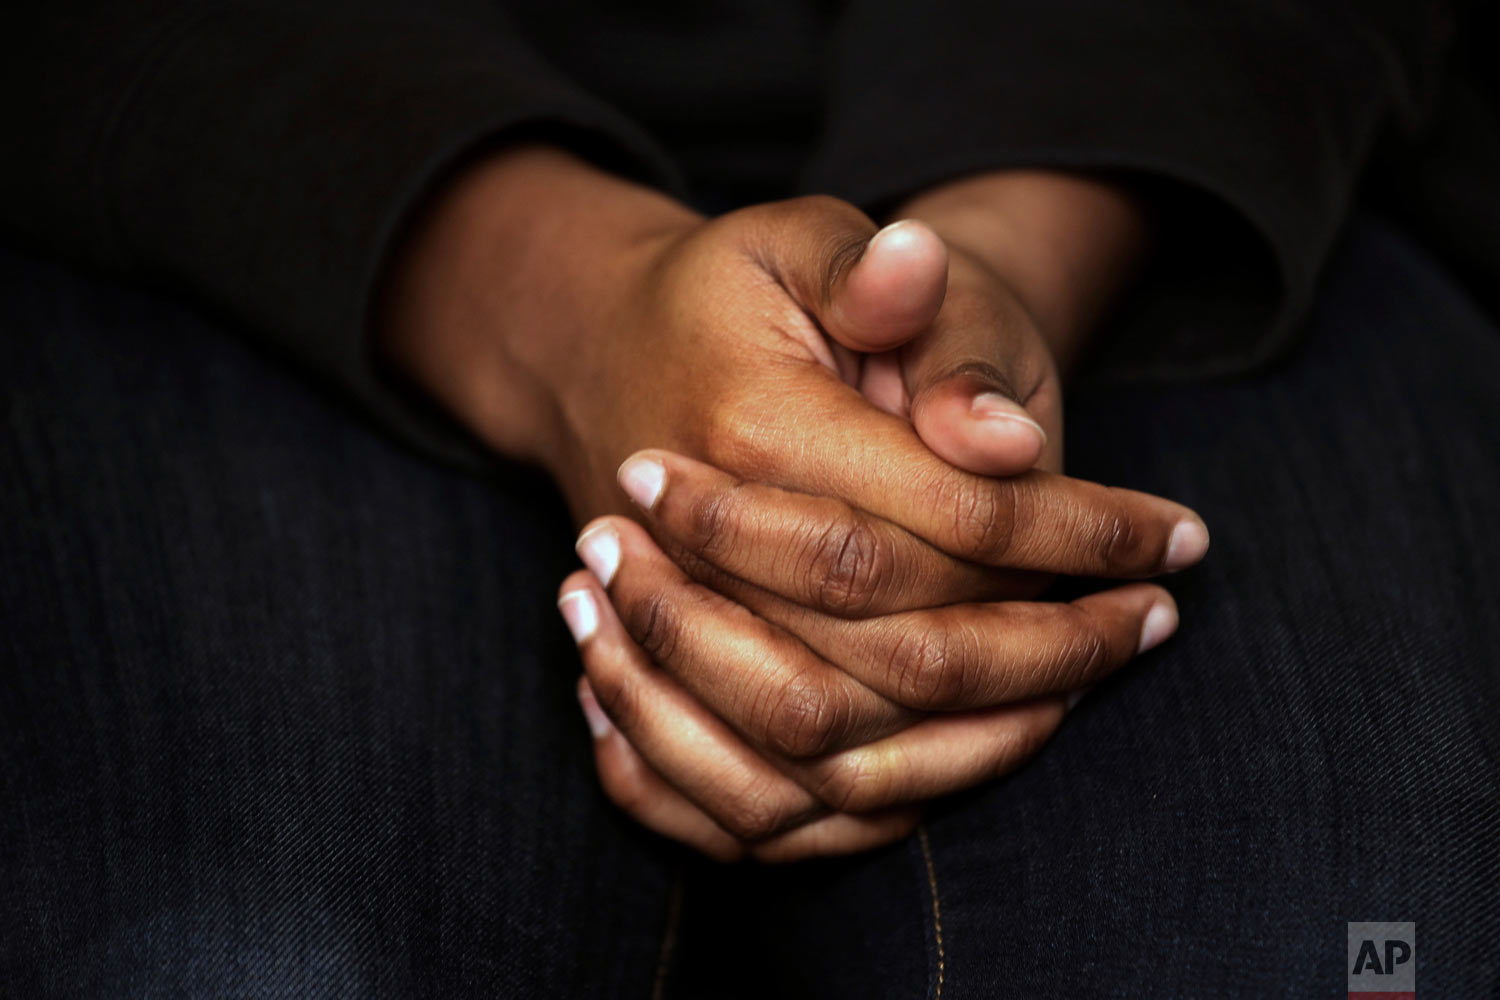 A survivor of sexual assault holds her hands as she speaks during an interview in the Brooklyn borough of New York on Wednesday, March 6, 2019. (AP Photo/Wong Maye-E)